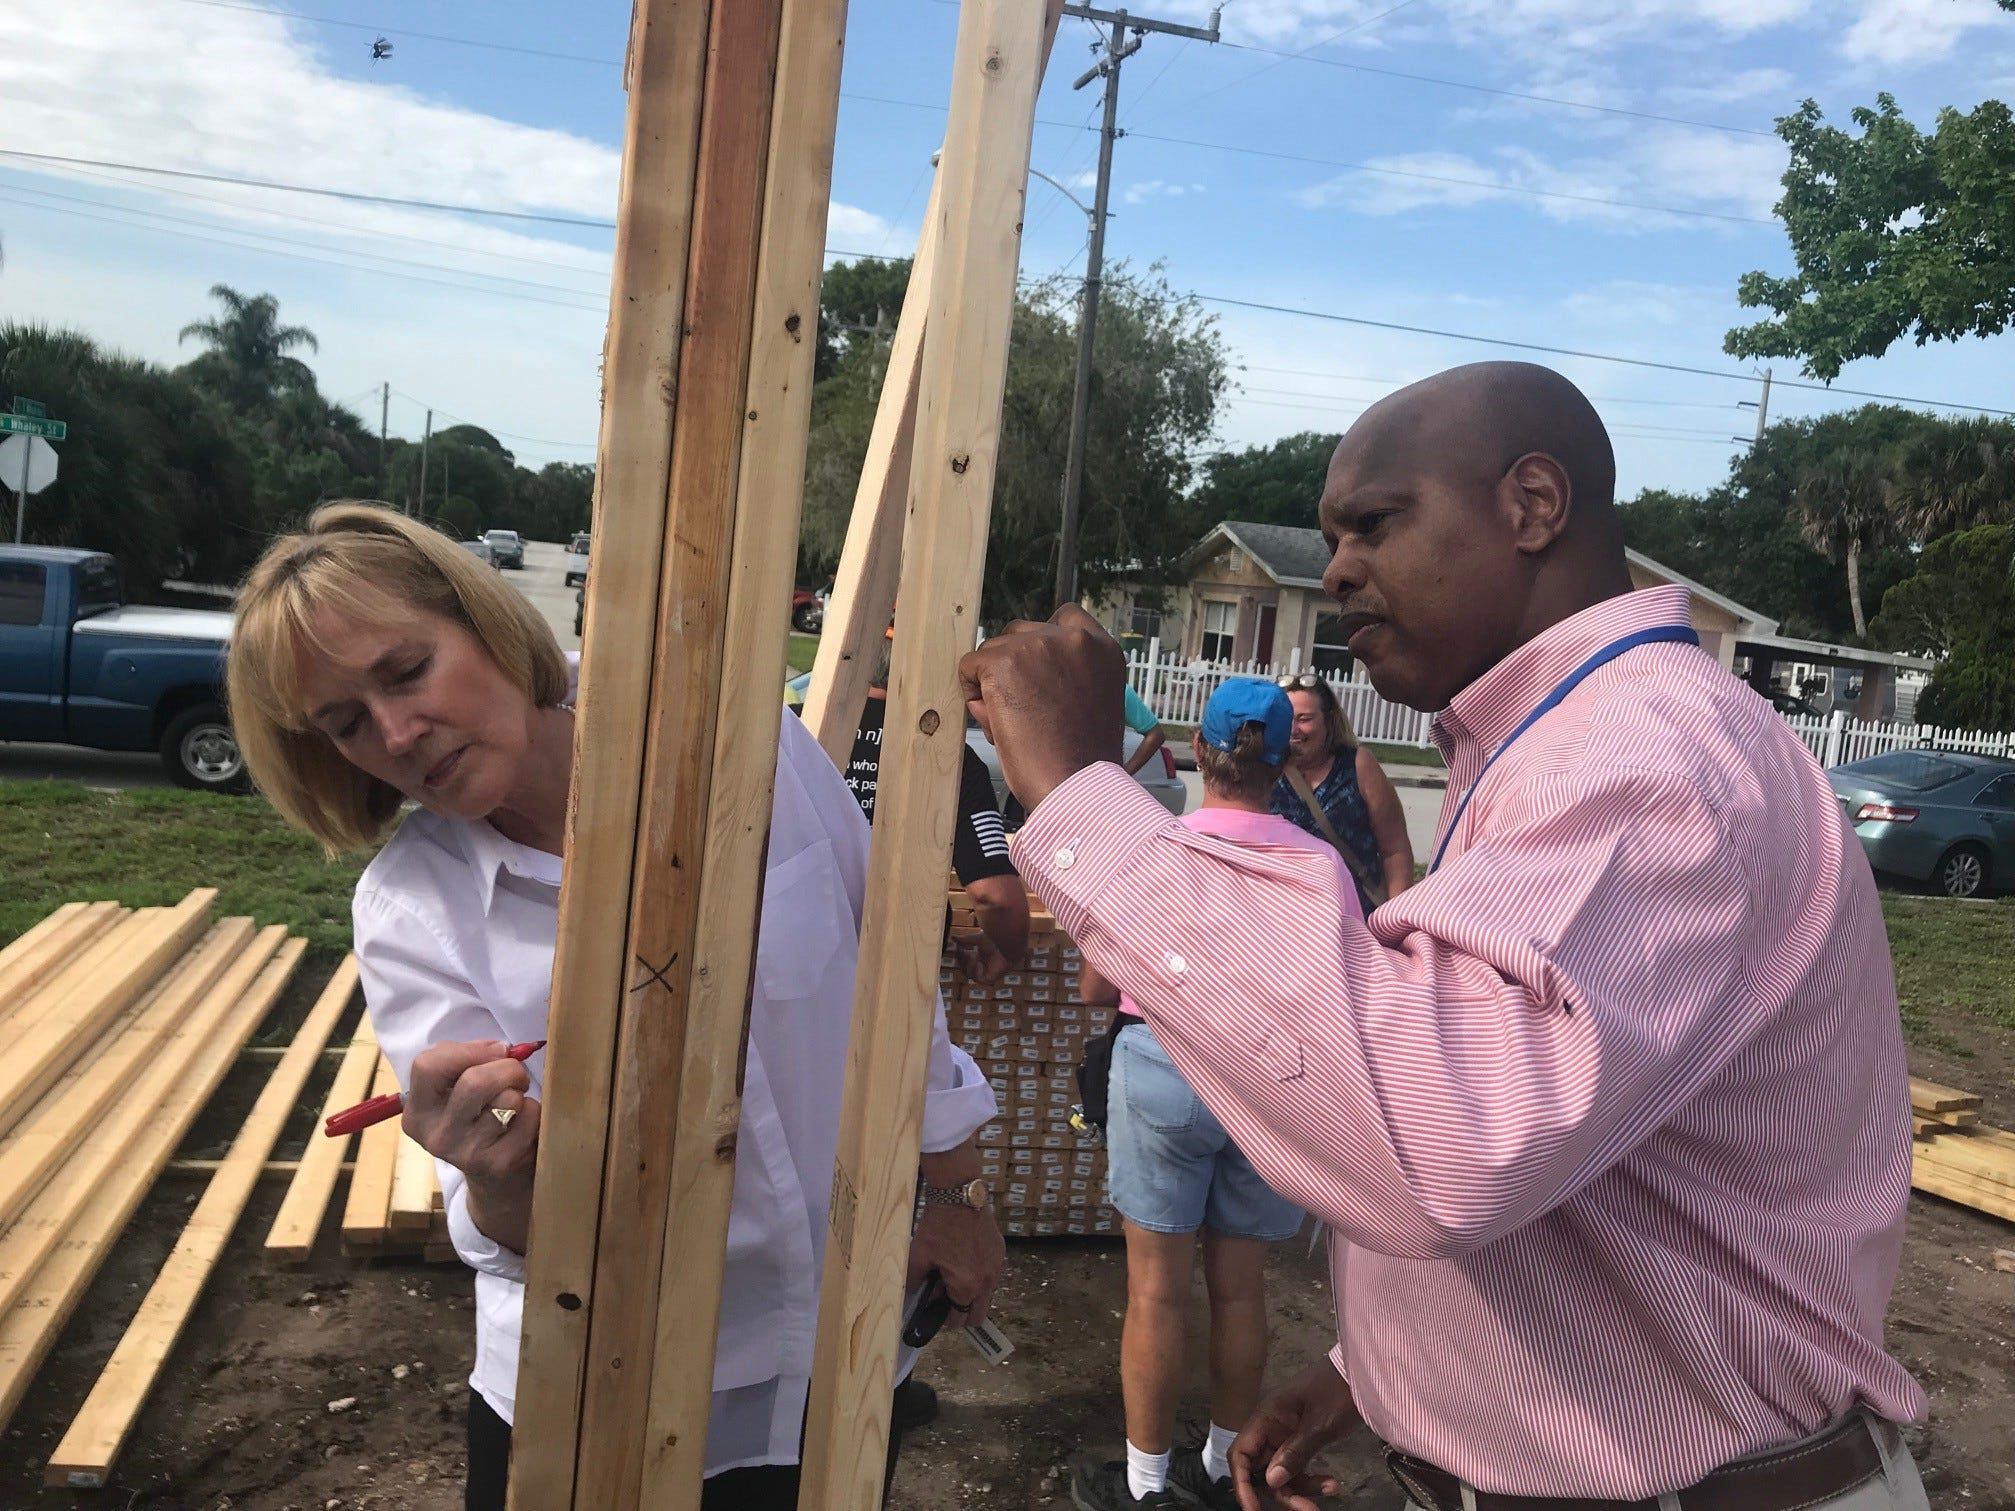 Delores Spearman, left, and Darryl Niles, sign the walls Monday at Karla Griggs' new home, which is being built by Habitat for Humanity of Brevard. Spearman and her husband Guy donated $100,000 check for the six-home project. Niles is program manager for the Community Redevelopment Agency of Cocoa.